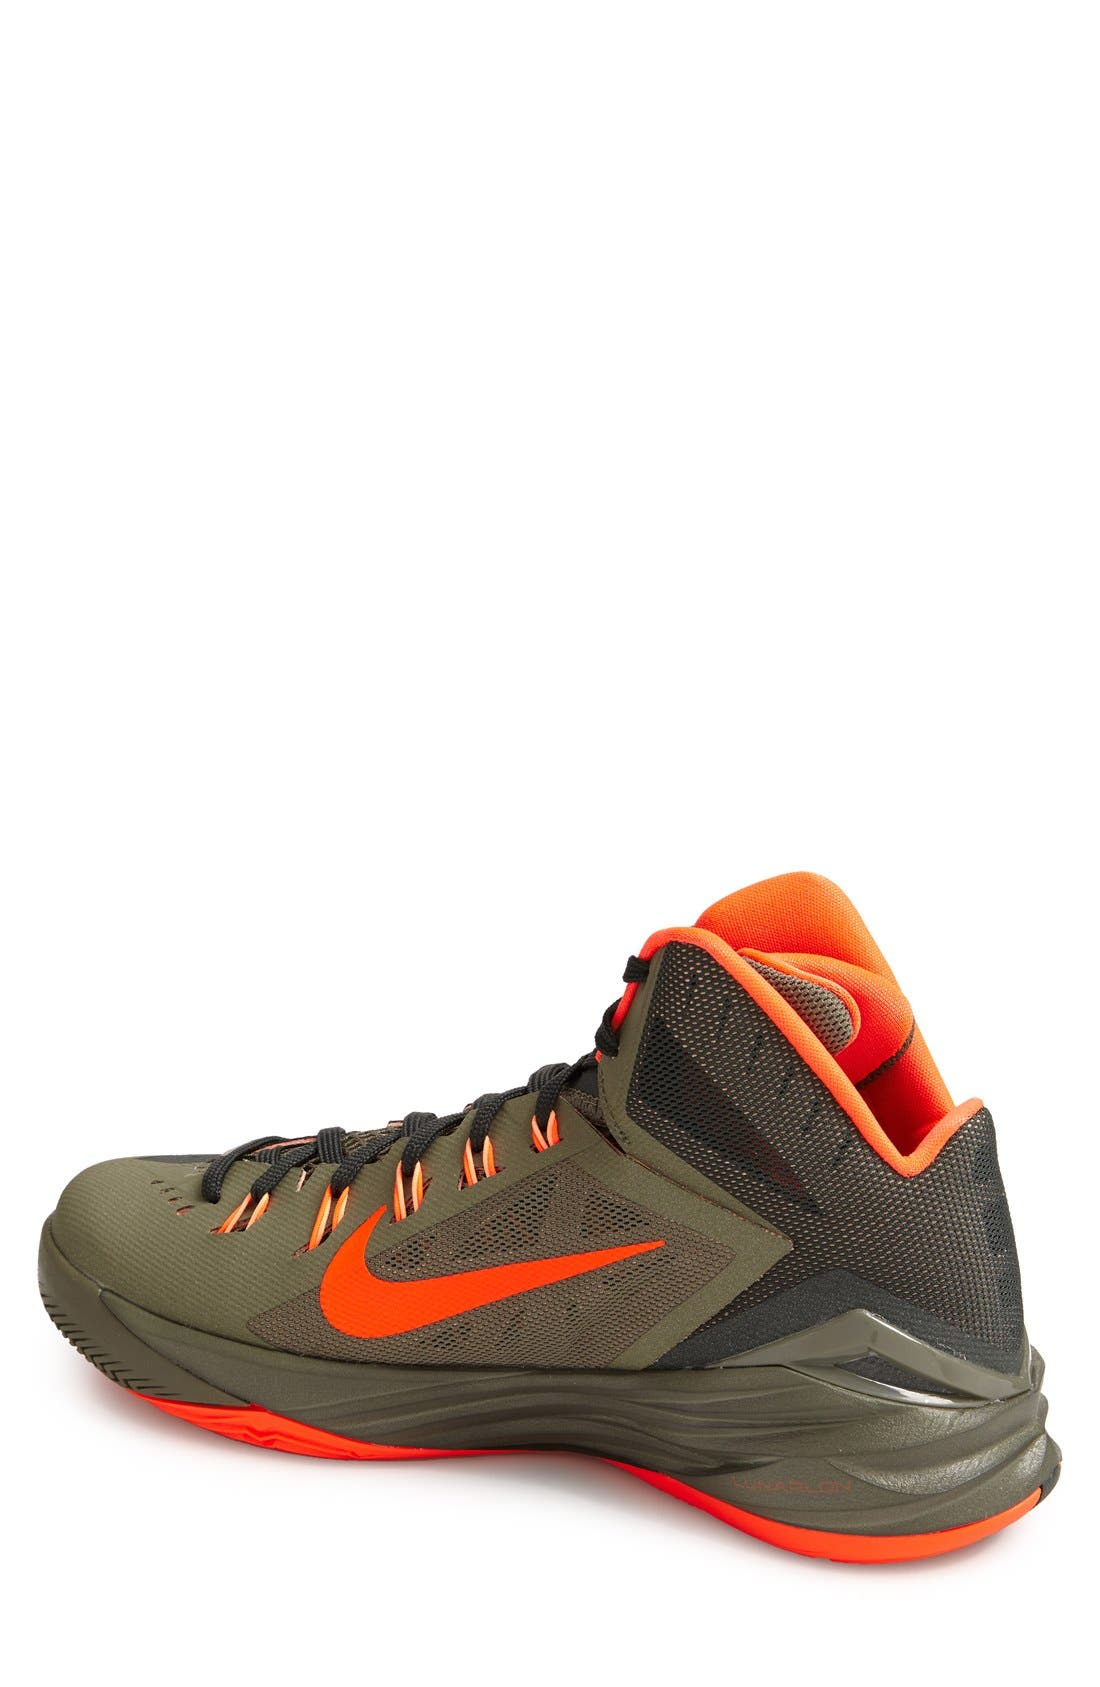 Alternate Image 2  - Nike 'Hyperdunk 2014' Basketball Shoe (Men)